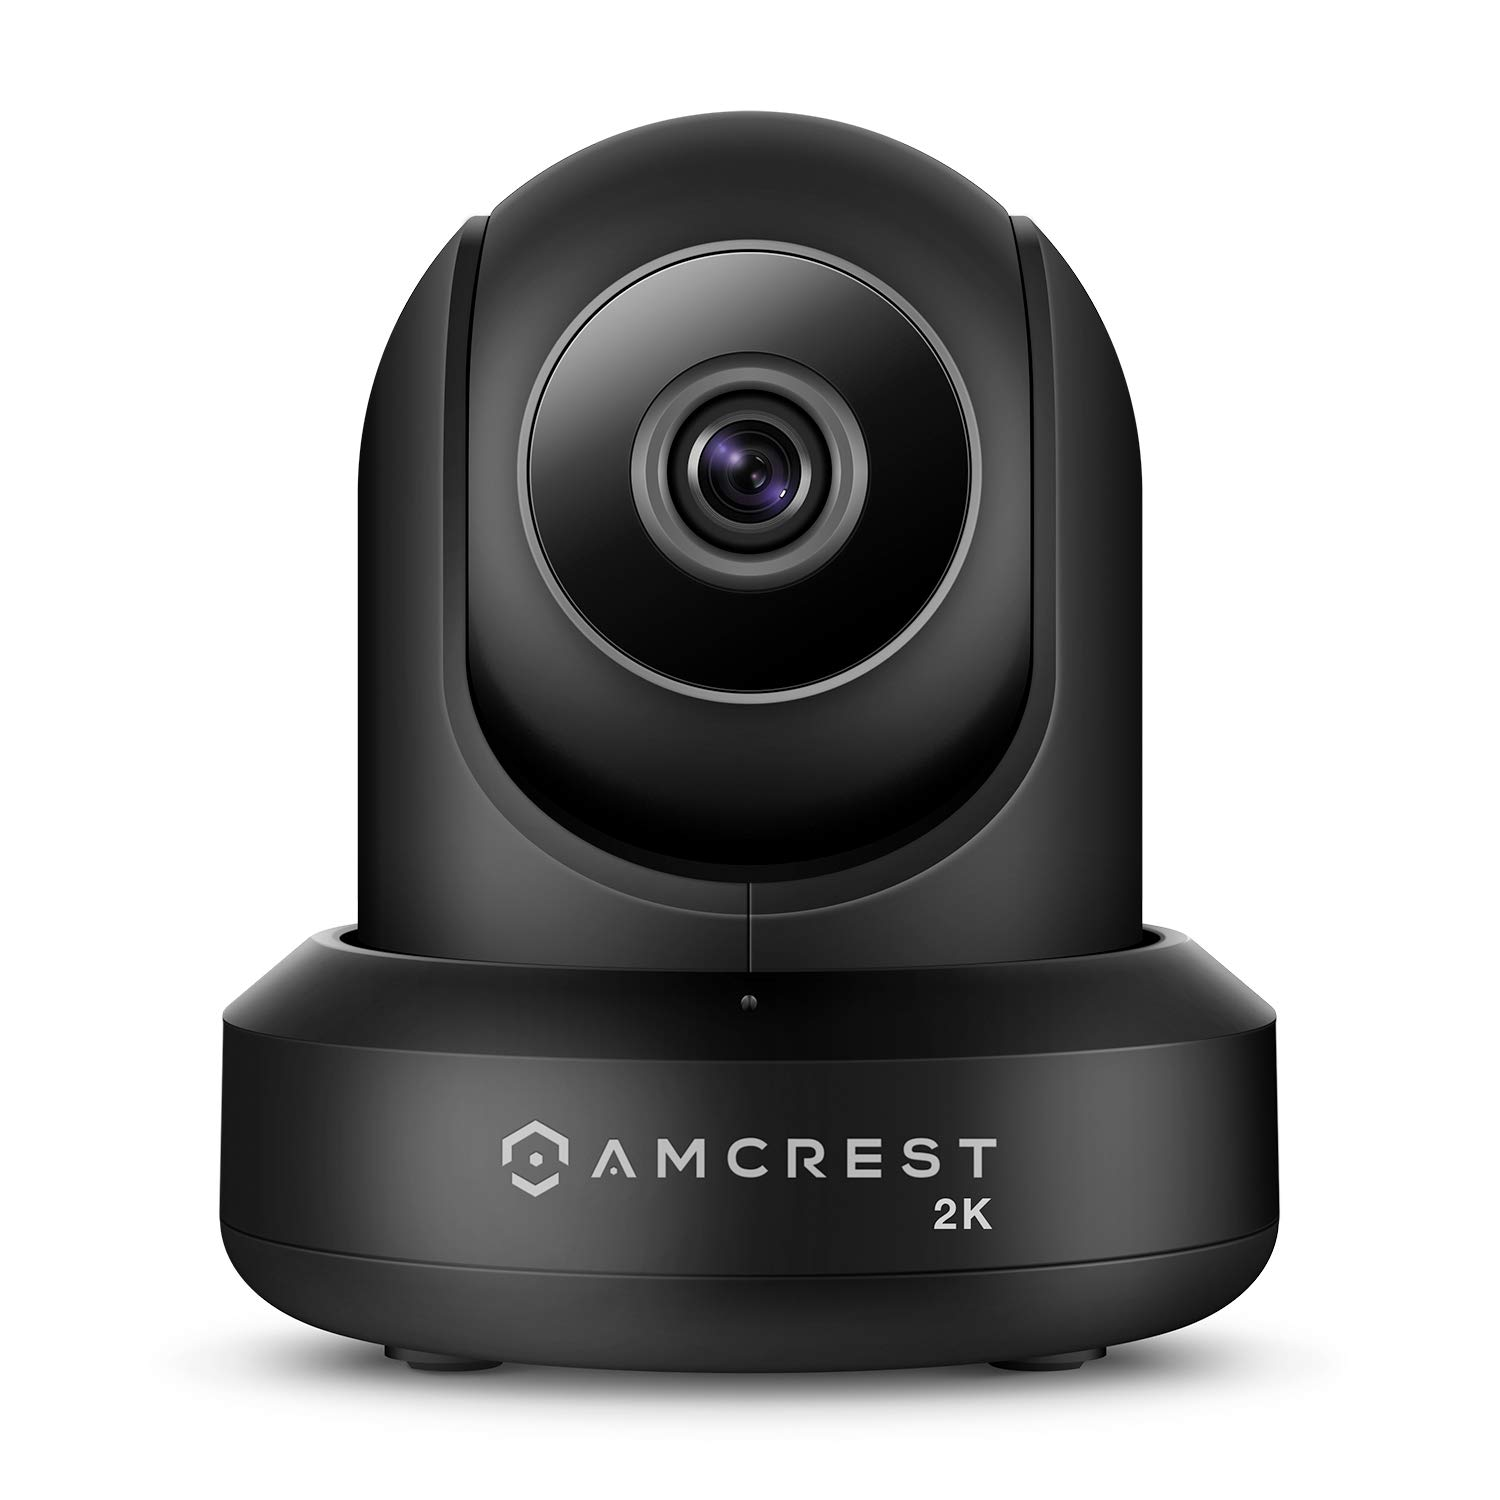 Amcrest UltraHD 2K (3MP/2304TVL) WiFi Video Security IP Camera with Pan/Tilt, Dual Band 5ghz/2.4ghz, Two-Way Audio, 3-Megapixel @ 20FPS, Wide 90° Viewing Angle and Night Vision IP3M-941B (Black) by Amcrest